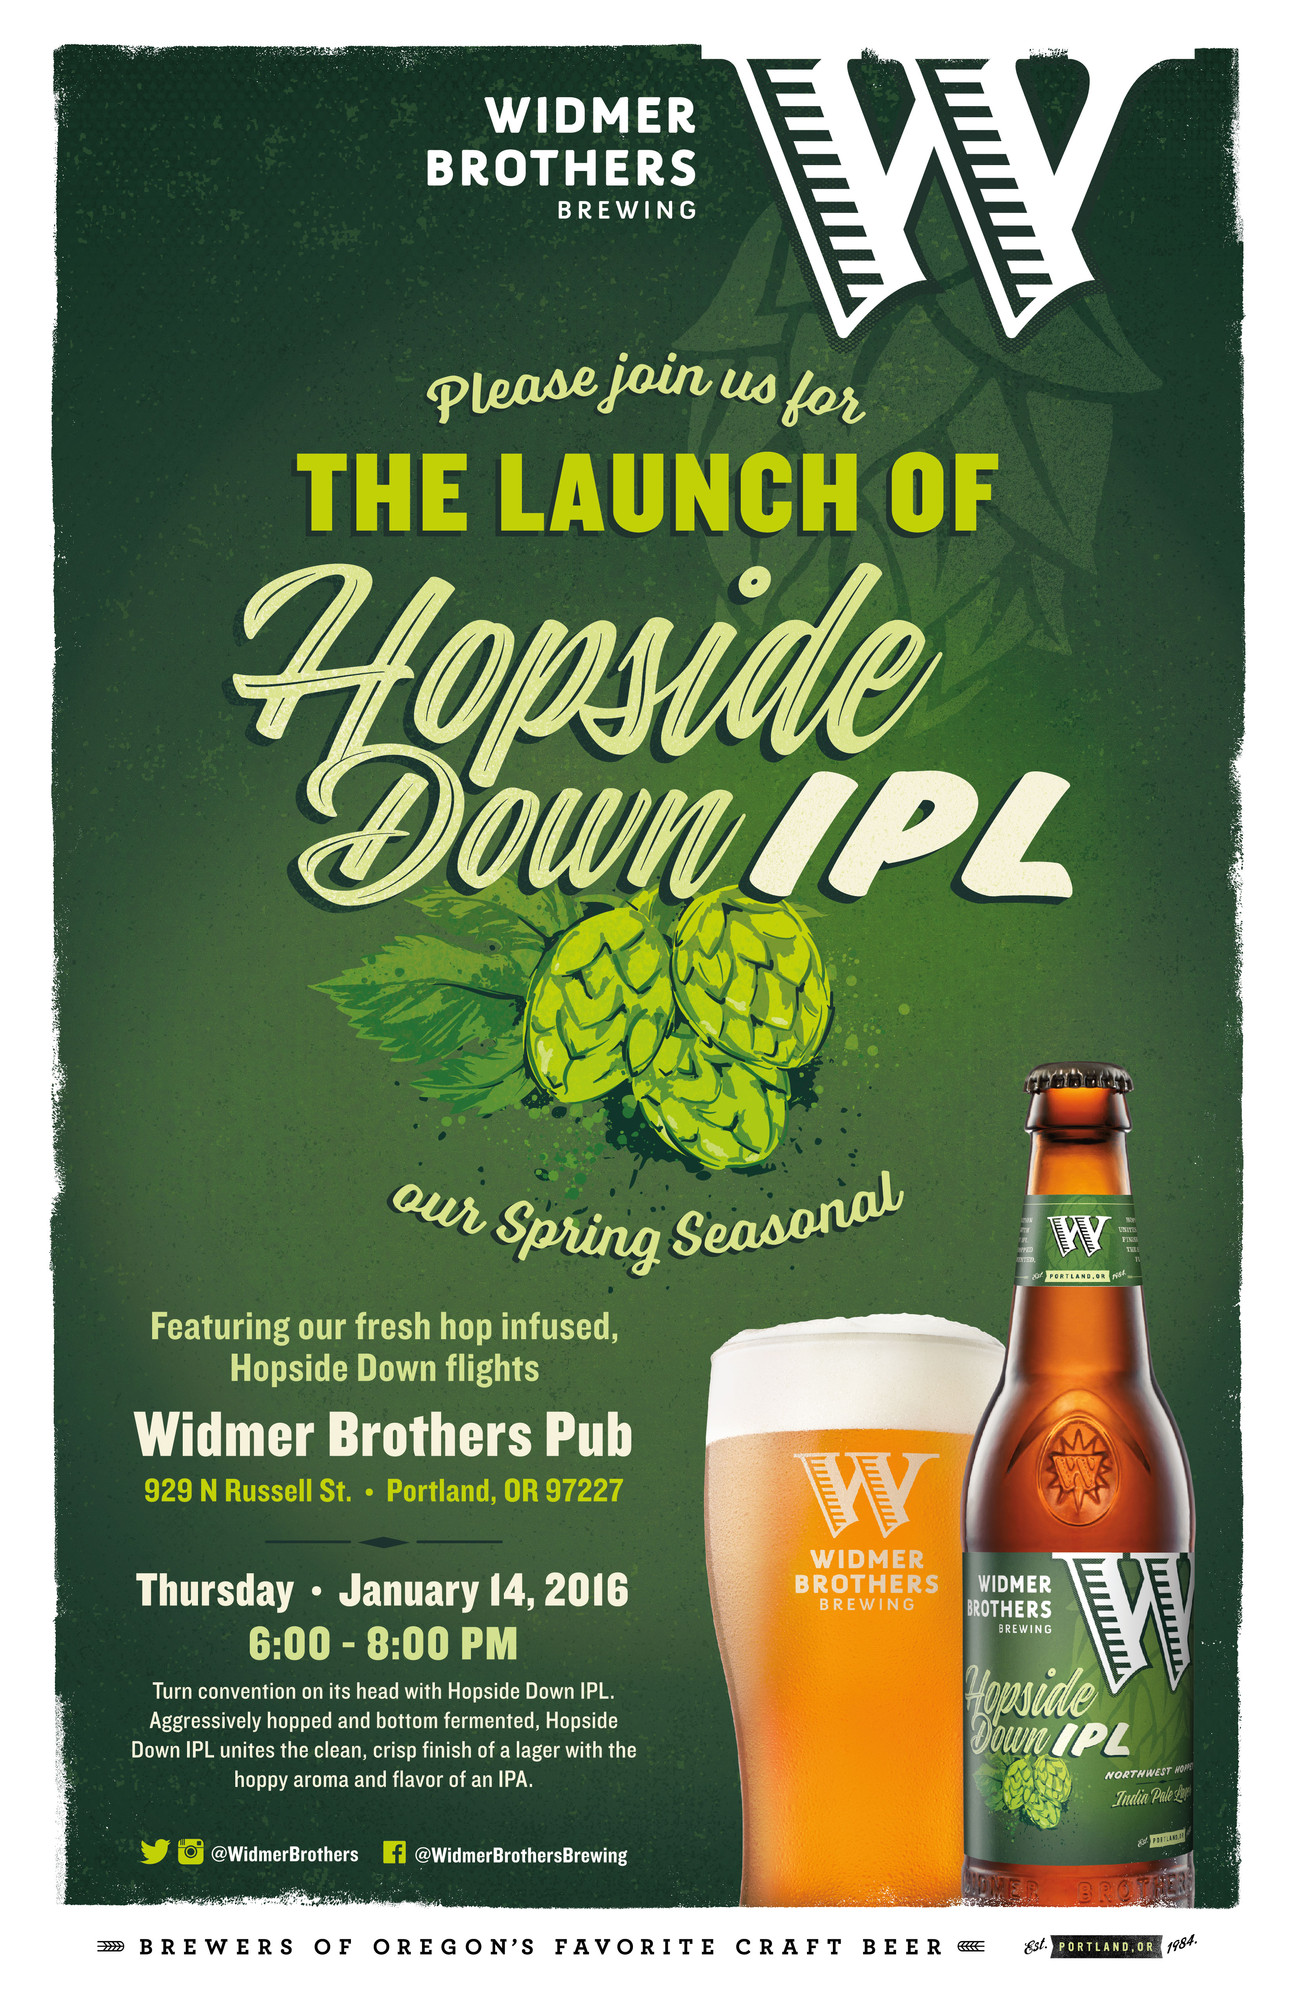 Widmer Brothers Brewing Hopside Down IPL Re-Launch Party